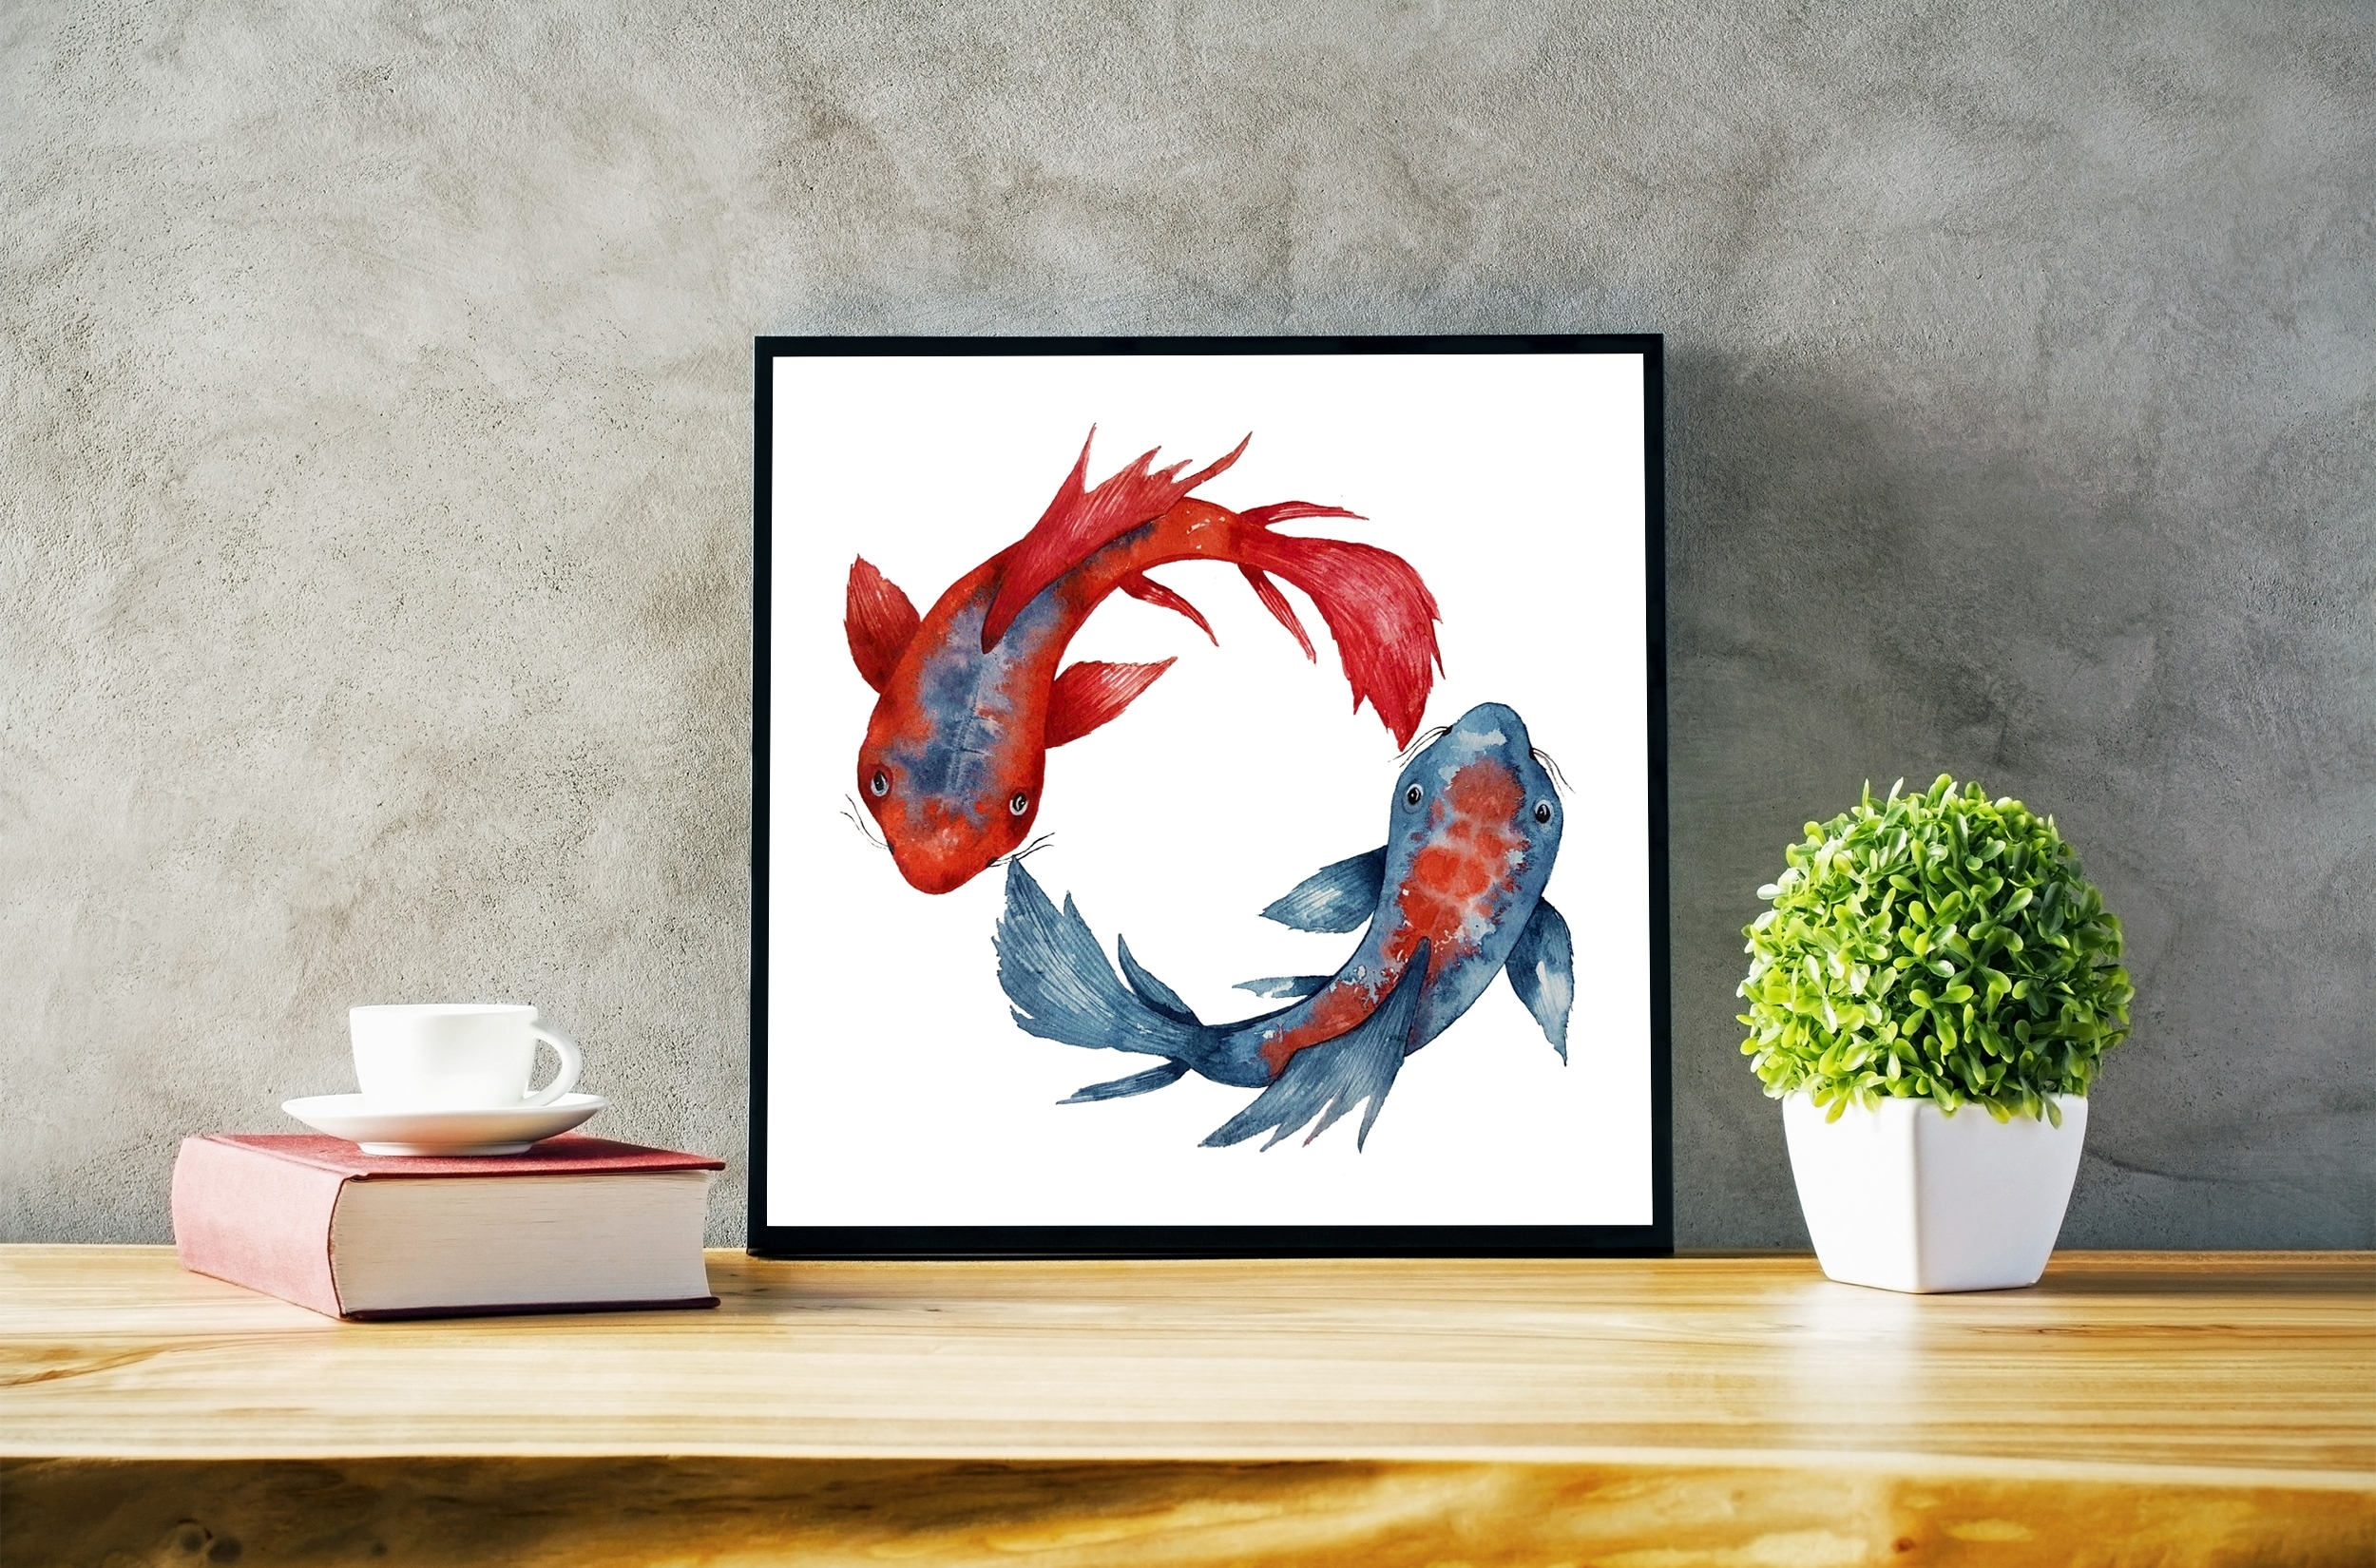 Yin Yang Koi Fish | Framed Poster | Wall Art Decor | Watercolor Throughout Most Up To Date Fish Painting Wall Art (Gallery 9 of 20)